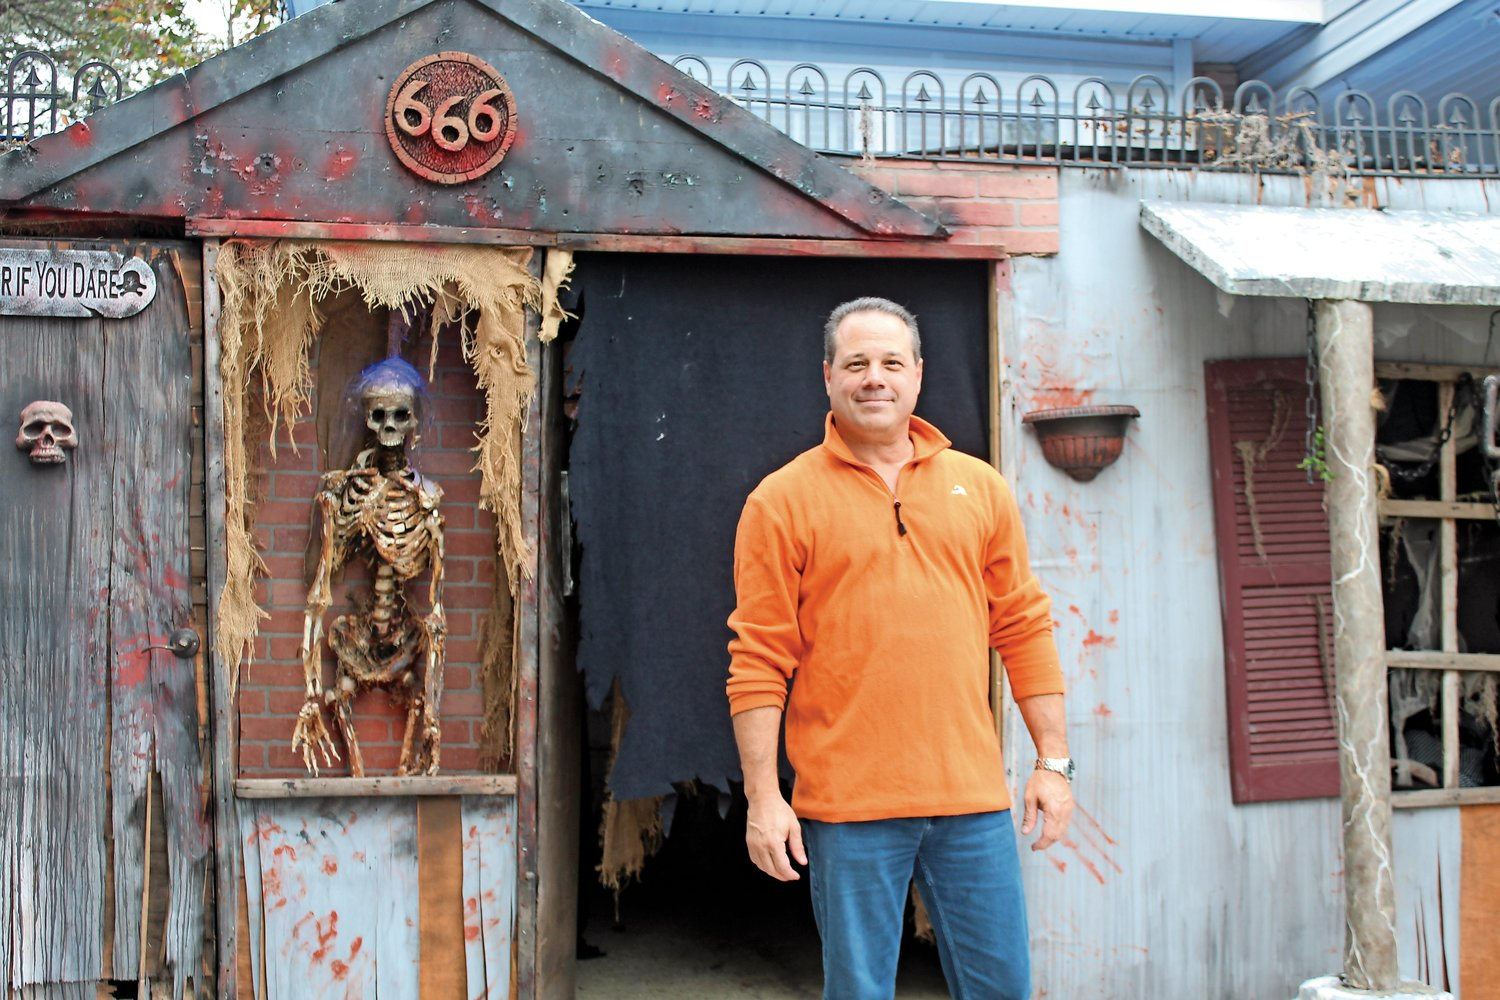 For almost 20 years, Joe Alloco has built a haunted house at his property on Norbay Street, but this year will be his last after he recently suffered a mini-stroke.